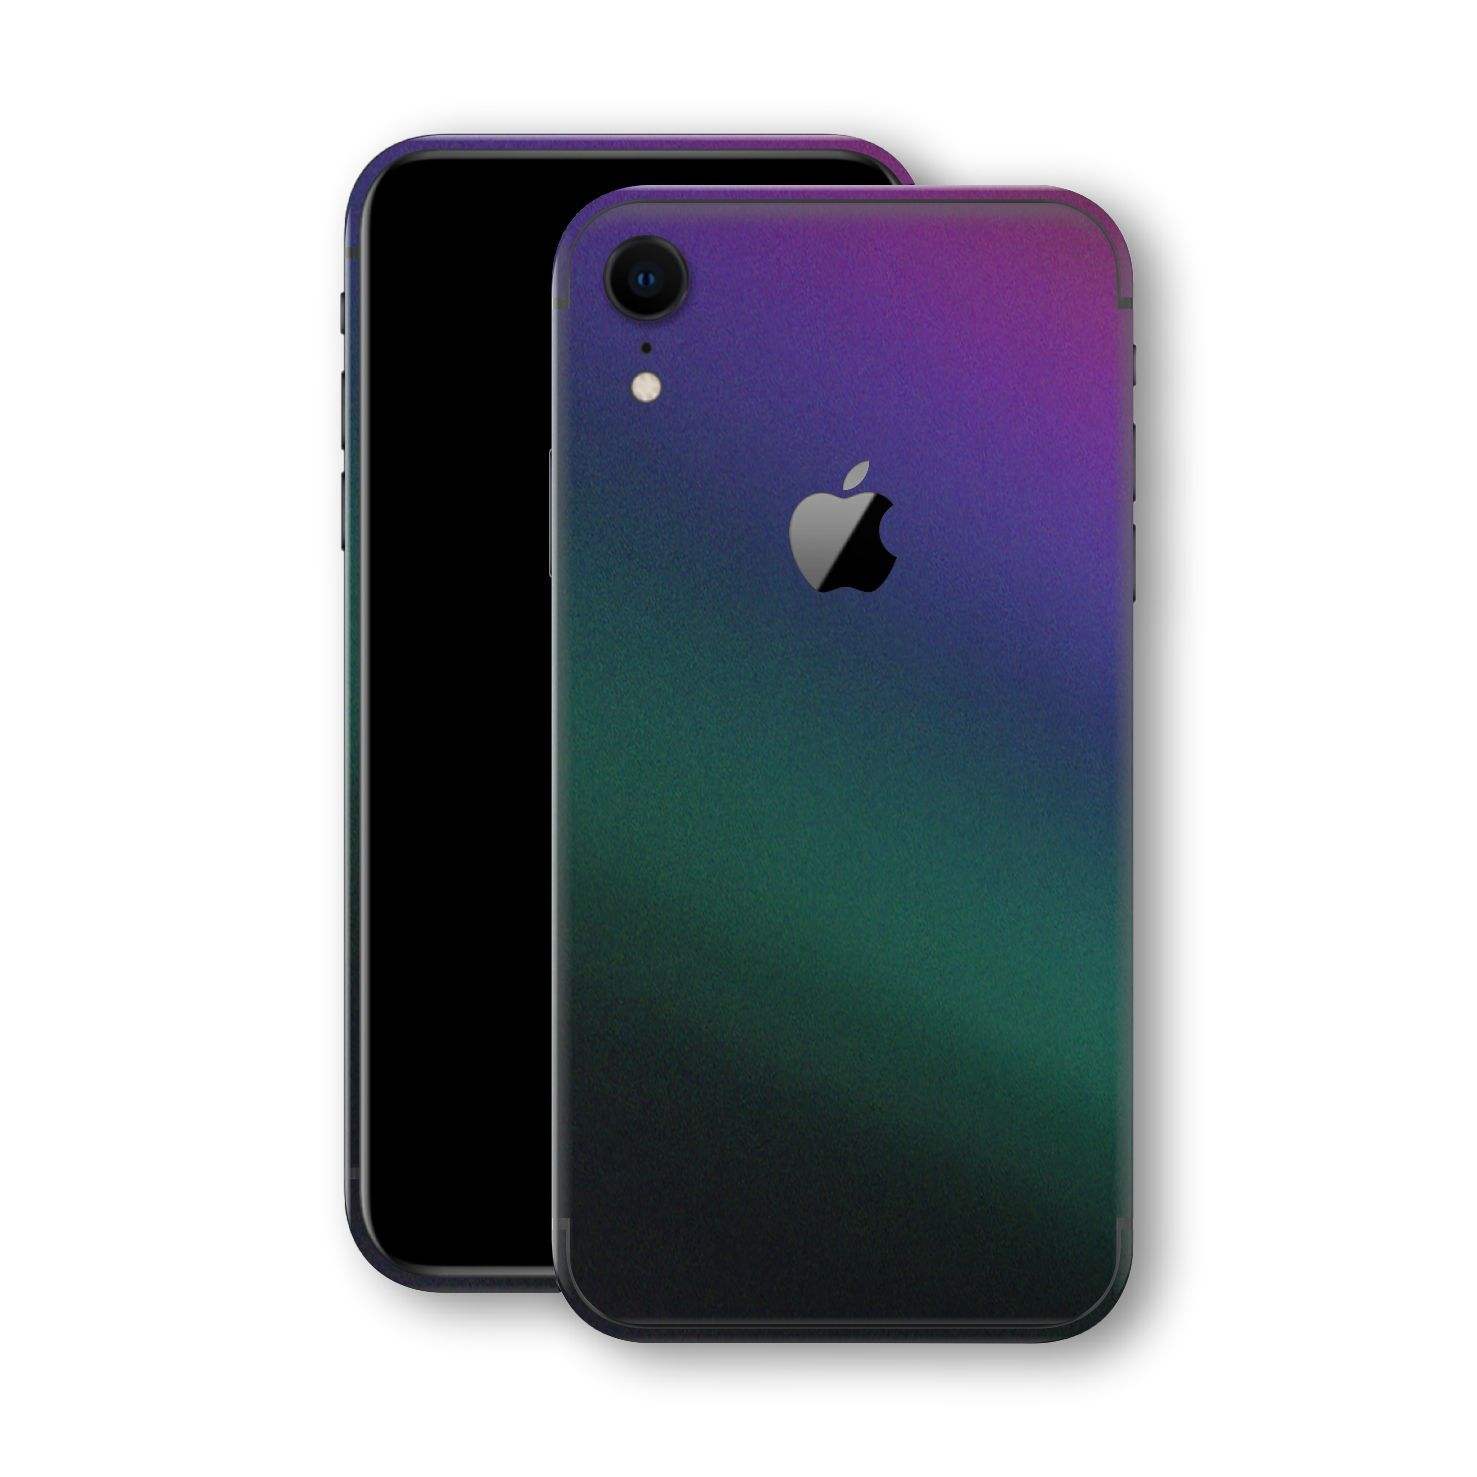 iPhone XR Chameleon DARK OPAL Colour-changing Skin, Wrap, Decal, Protector, Cover by EasySkinz | EasySkinz.com